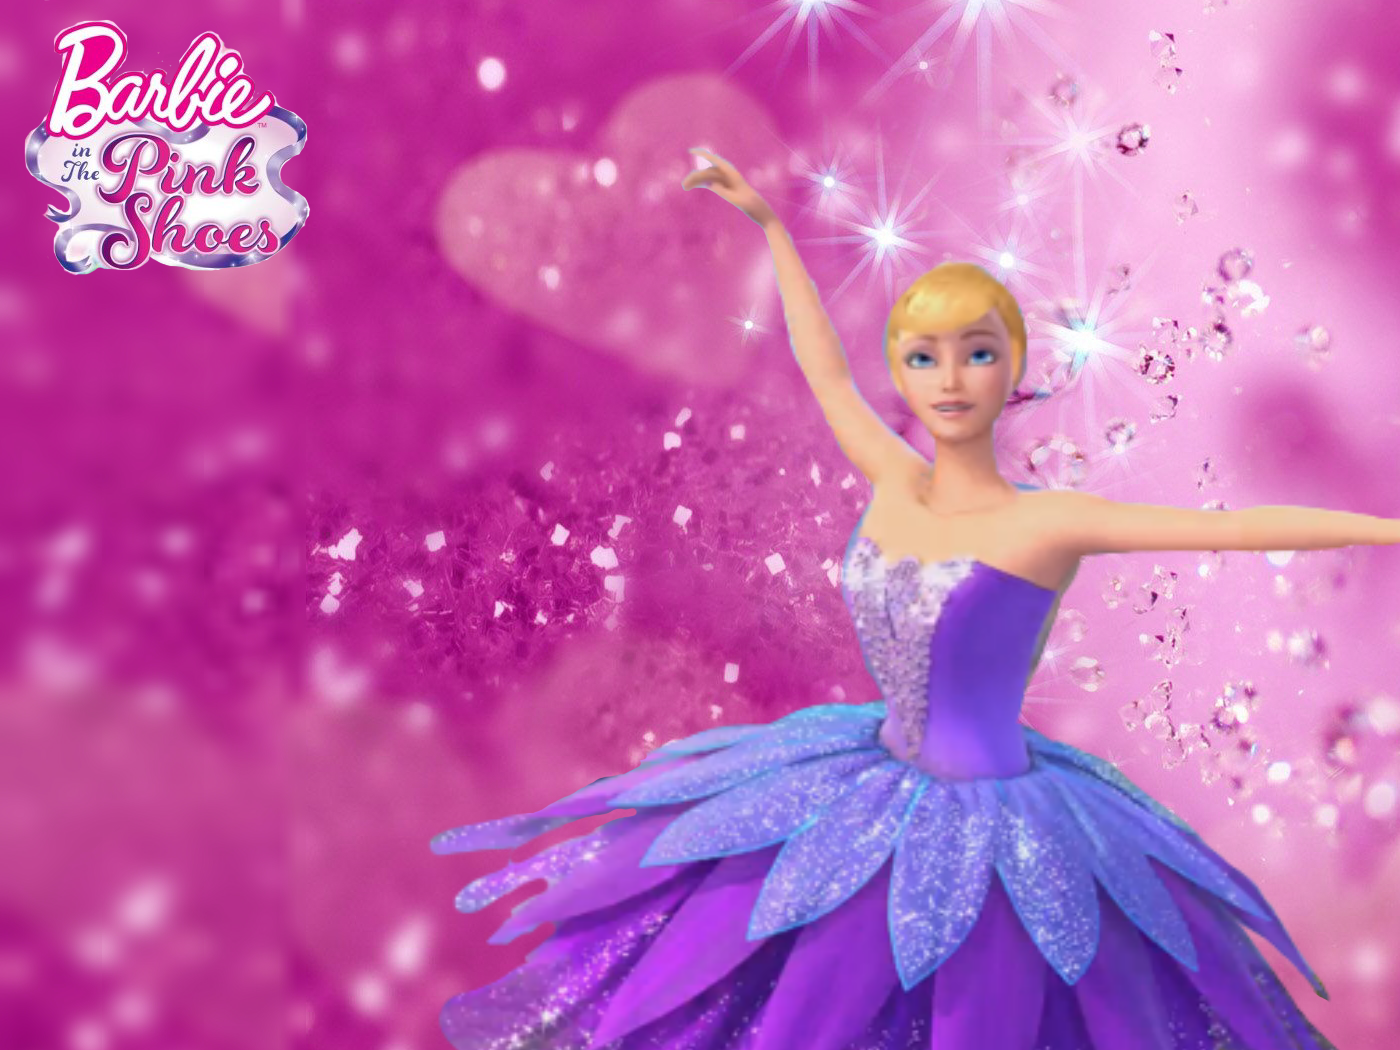 barbie wallpaper free - HD Desktop Wallpapers | 4k HD